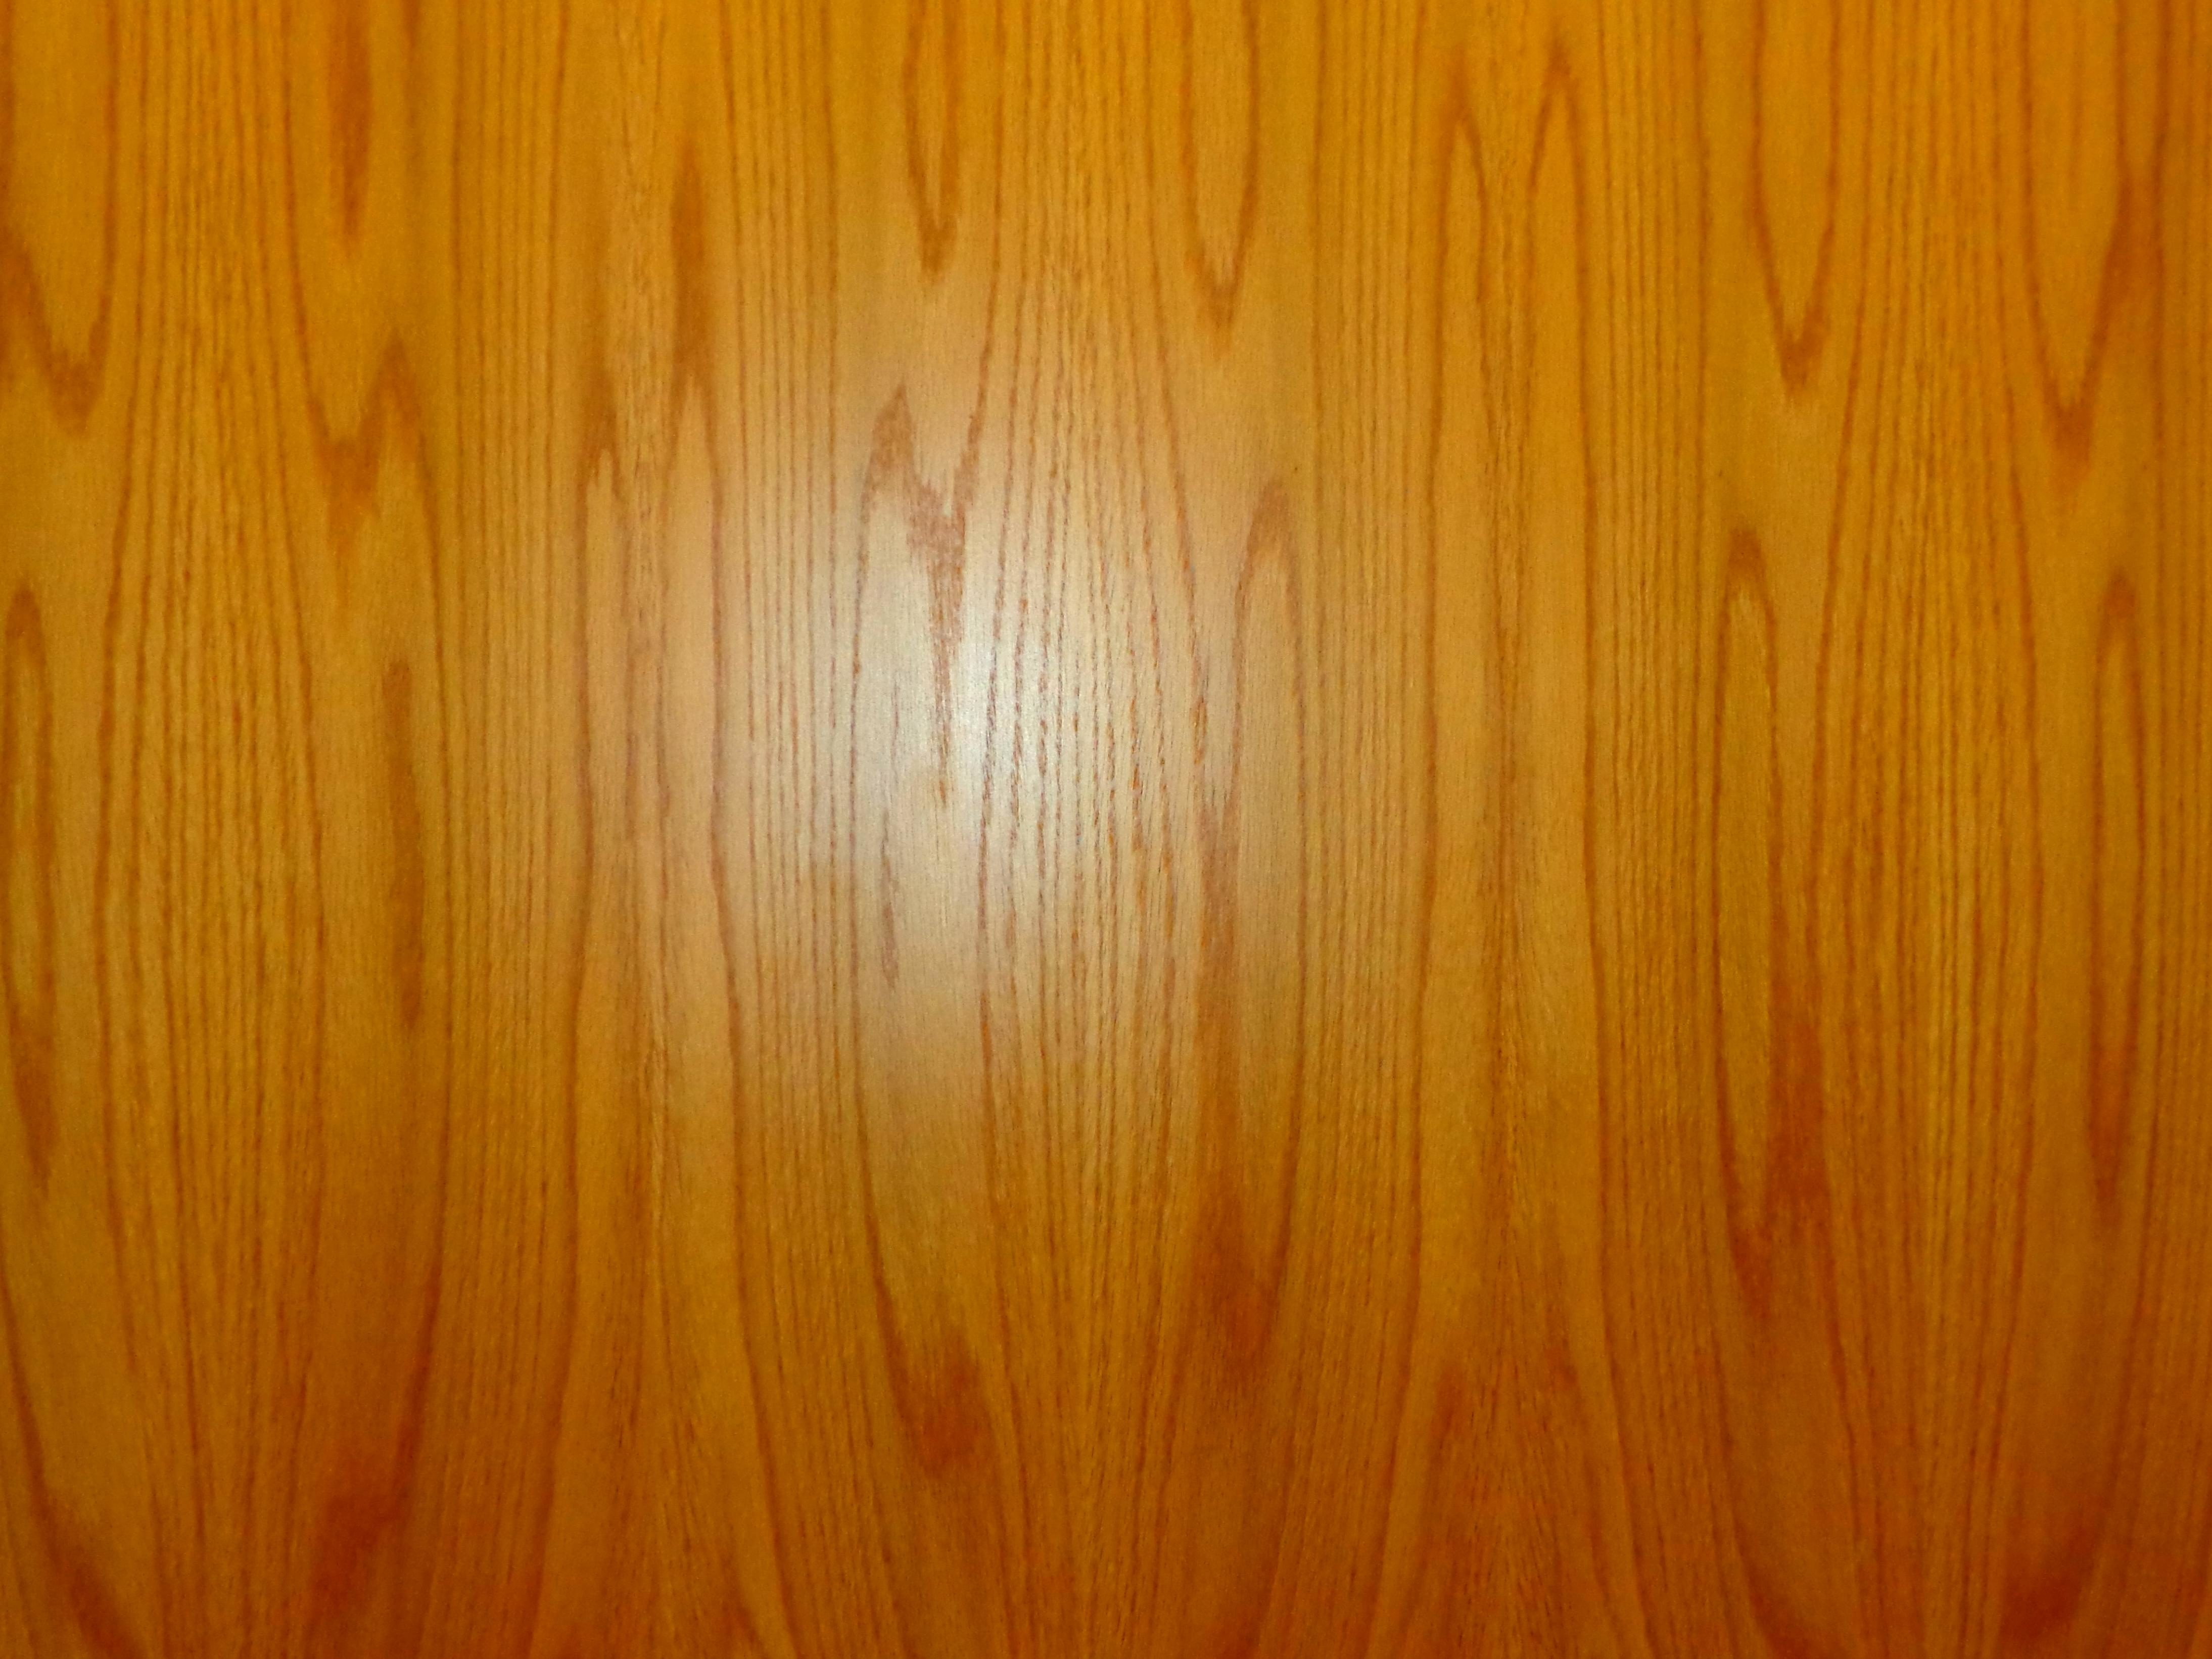 Free picture: wood, grain, texture, parquet